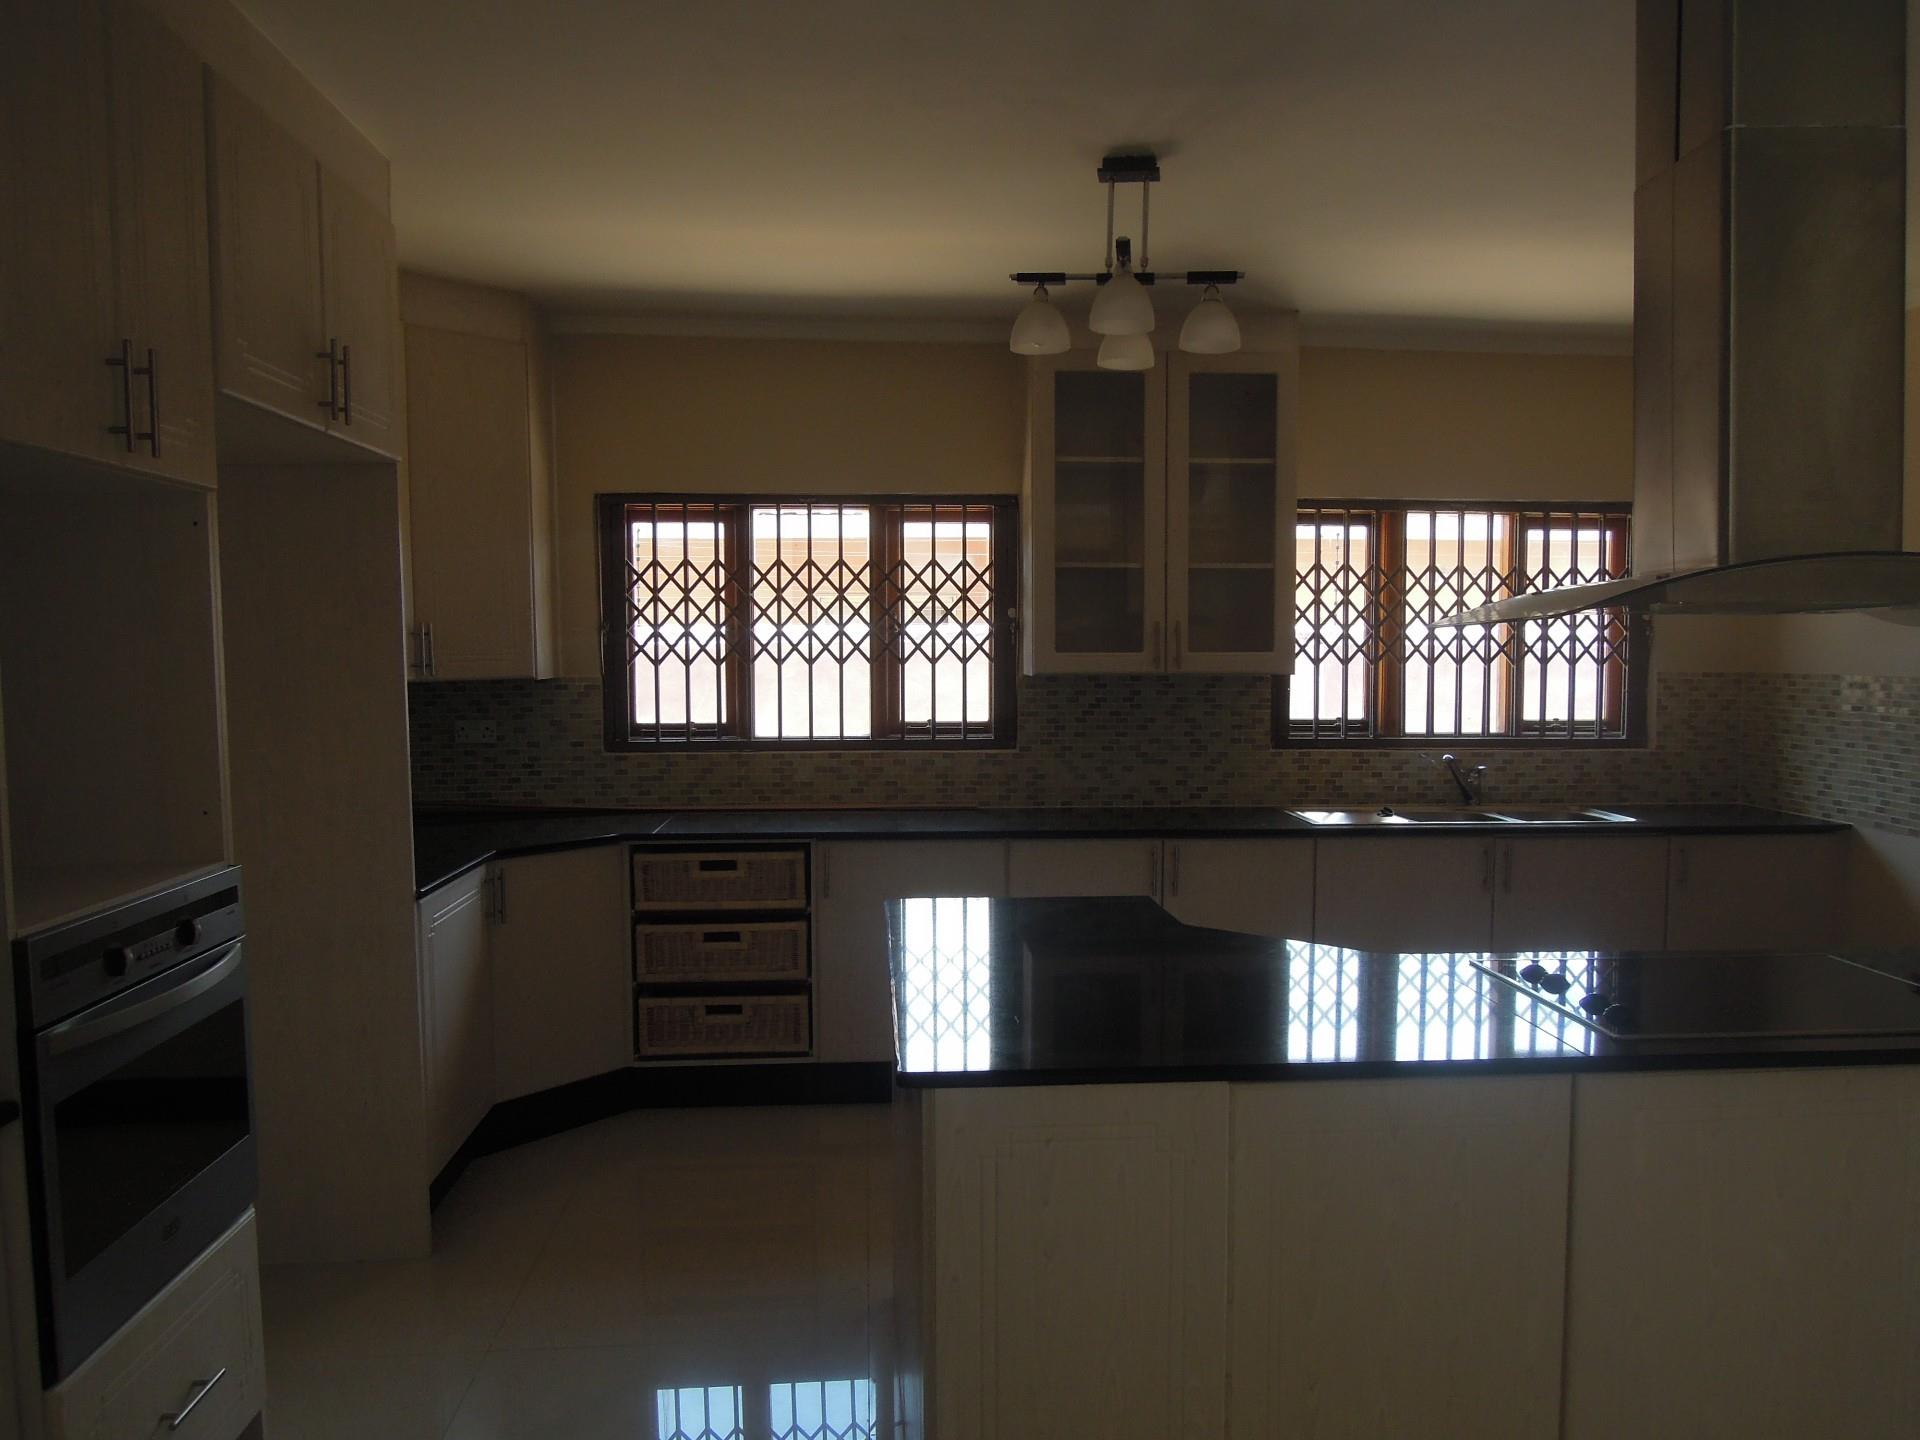 5 Bedroom House To Rent in Broadhurst